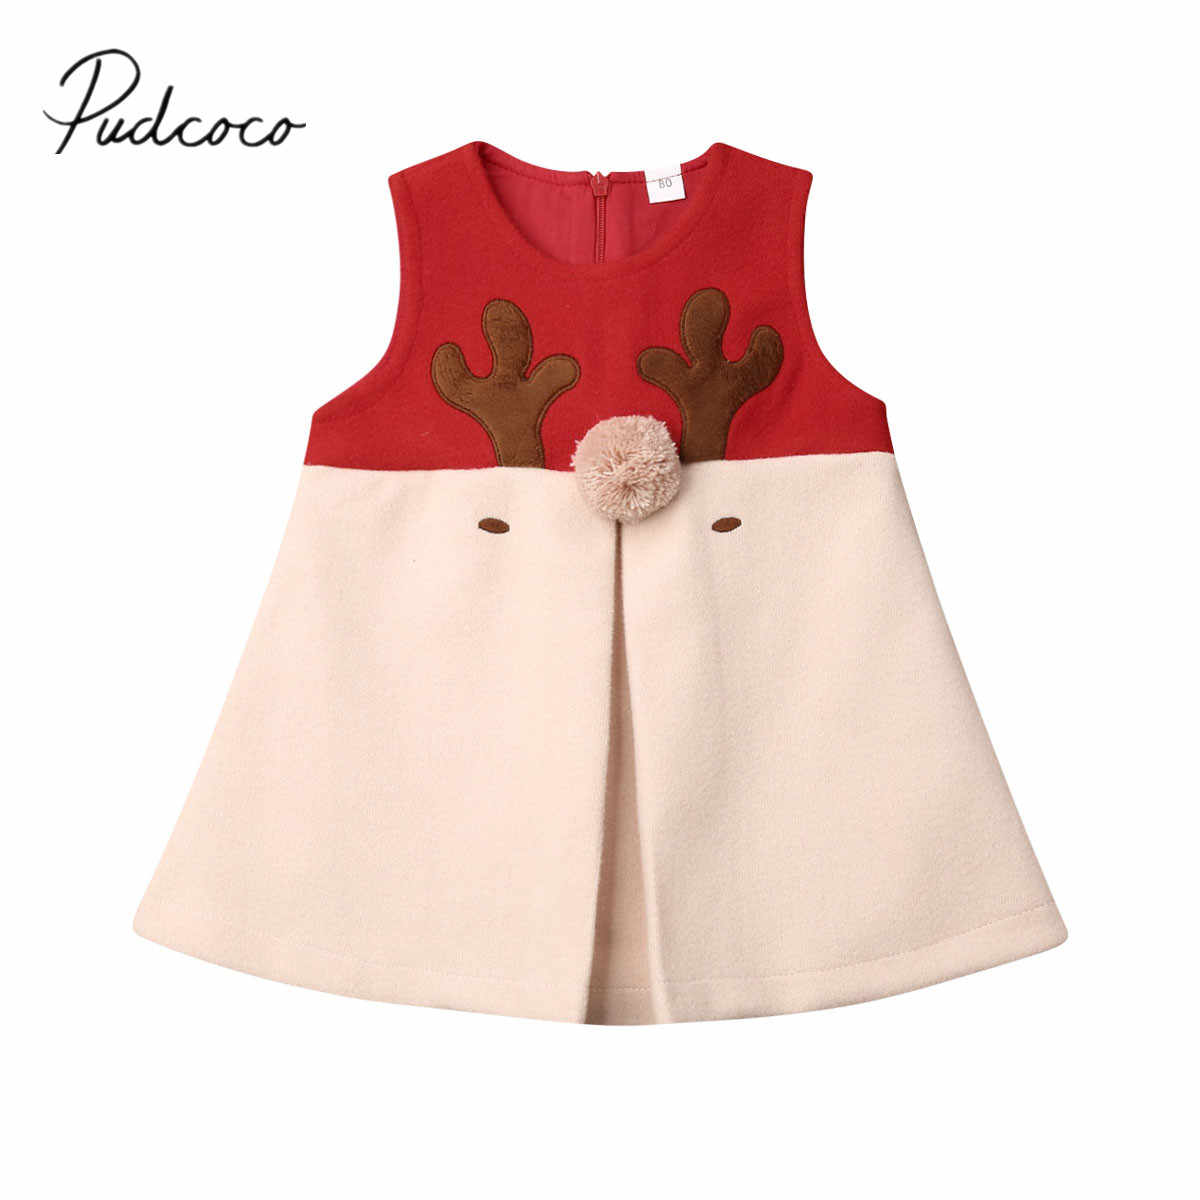 2019 Baby Spring Summer Clothing Newborn Baby Girls Kids Hairy Christmas Xmas Vest Antlers Tops Cotton Wood Elk Clothes 1-5T